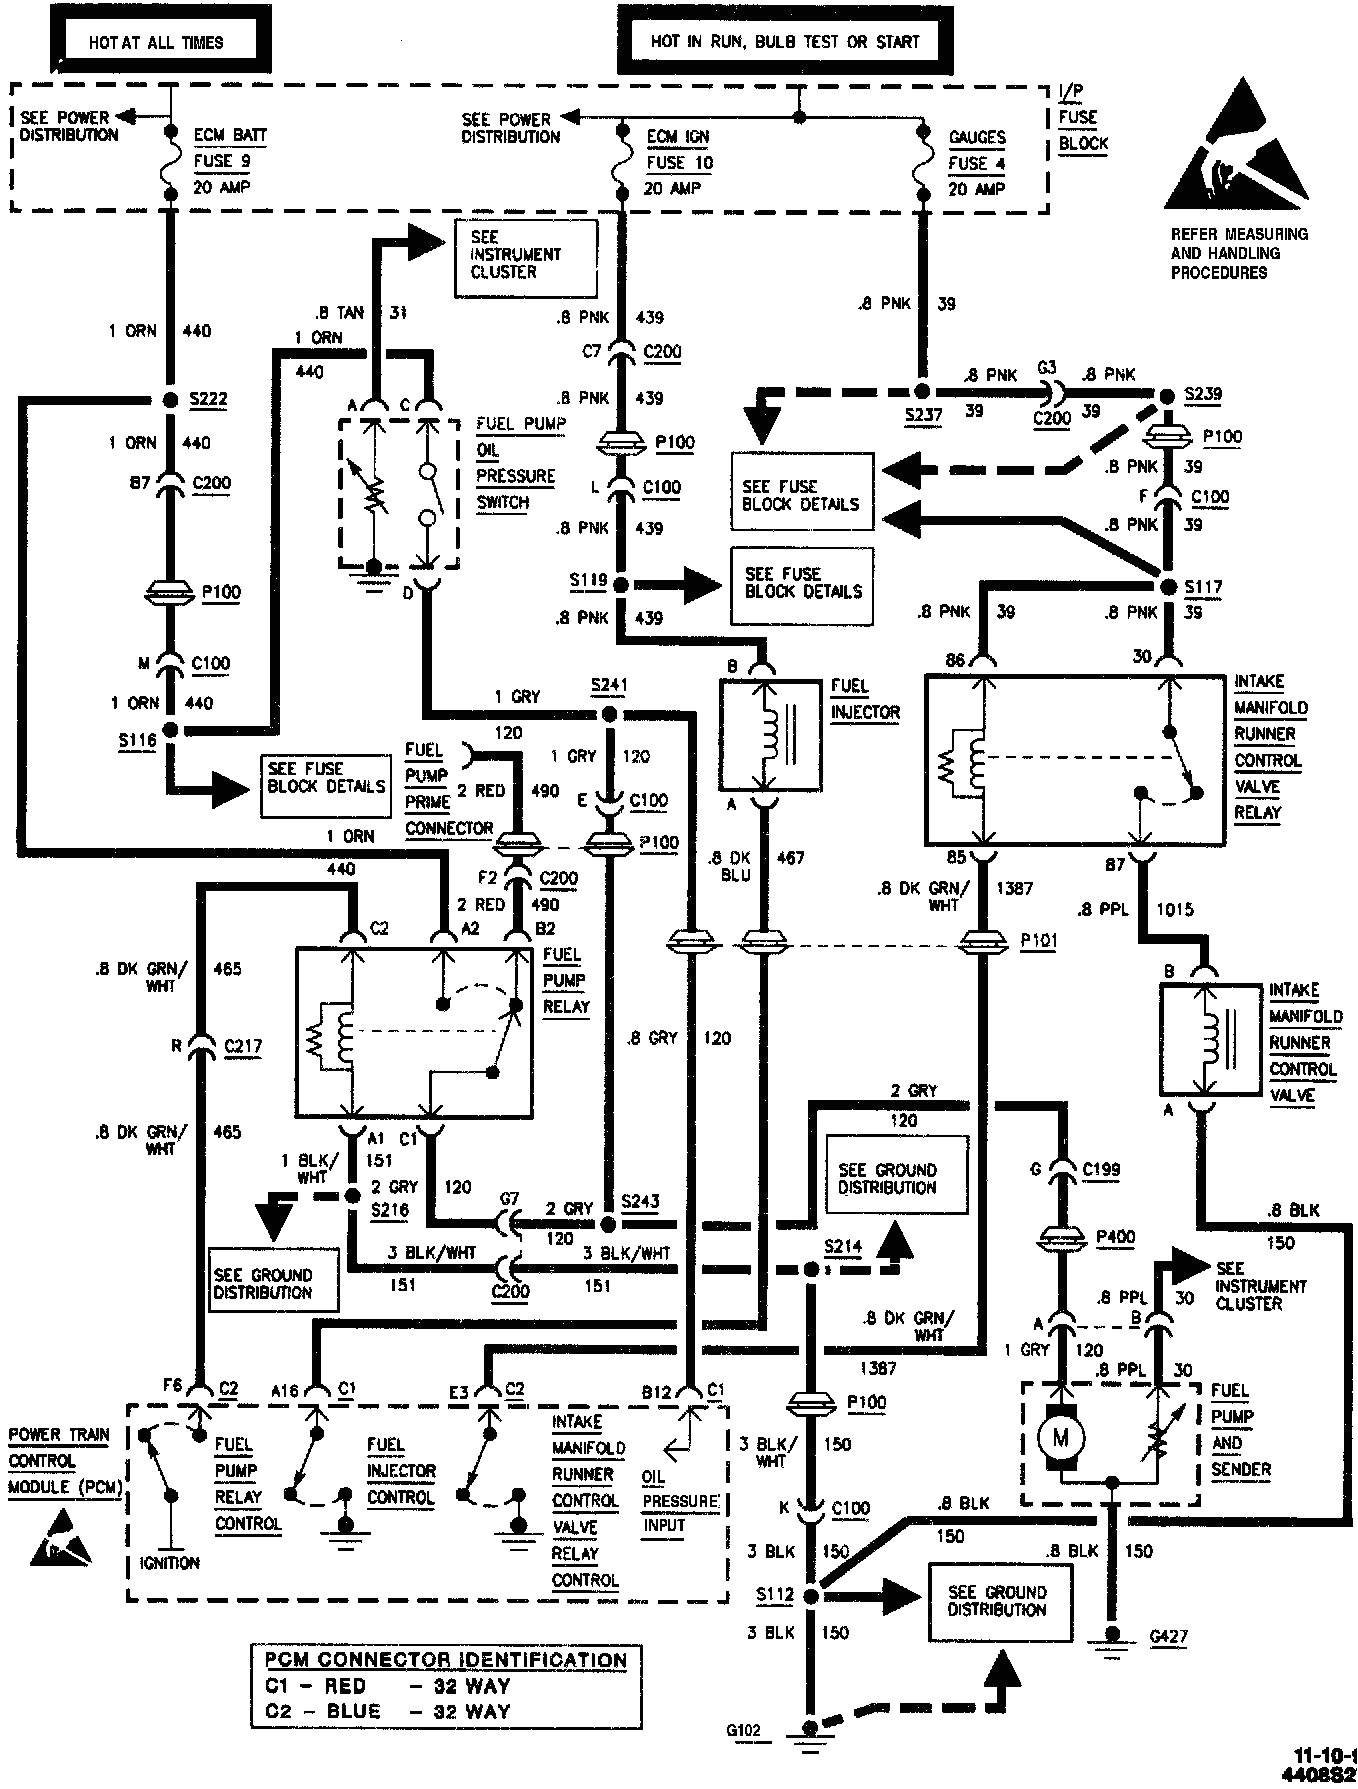 2000 s10 wiring schematic wiring diagram blog 2000 s10 system waring diagrams